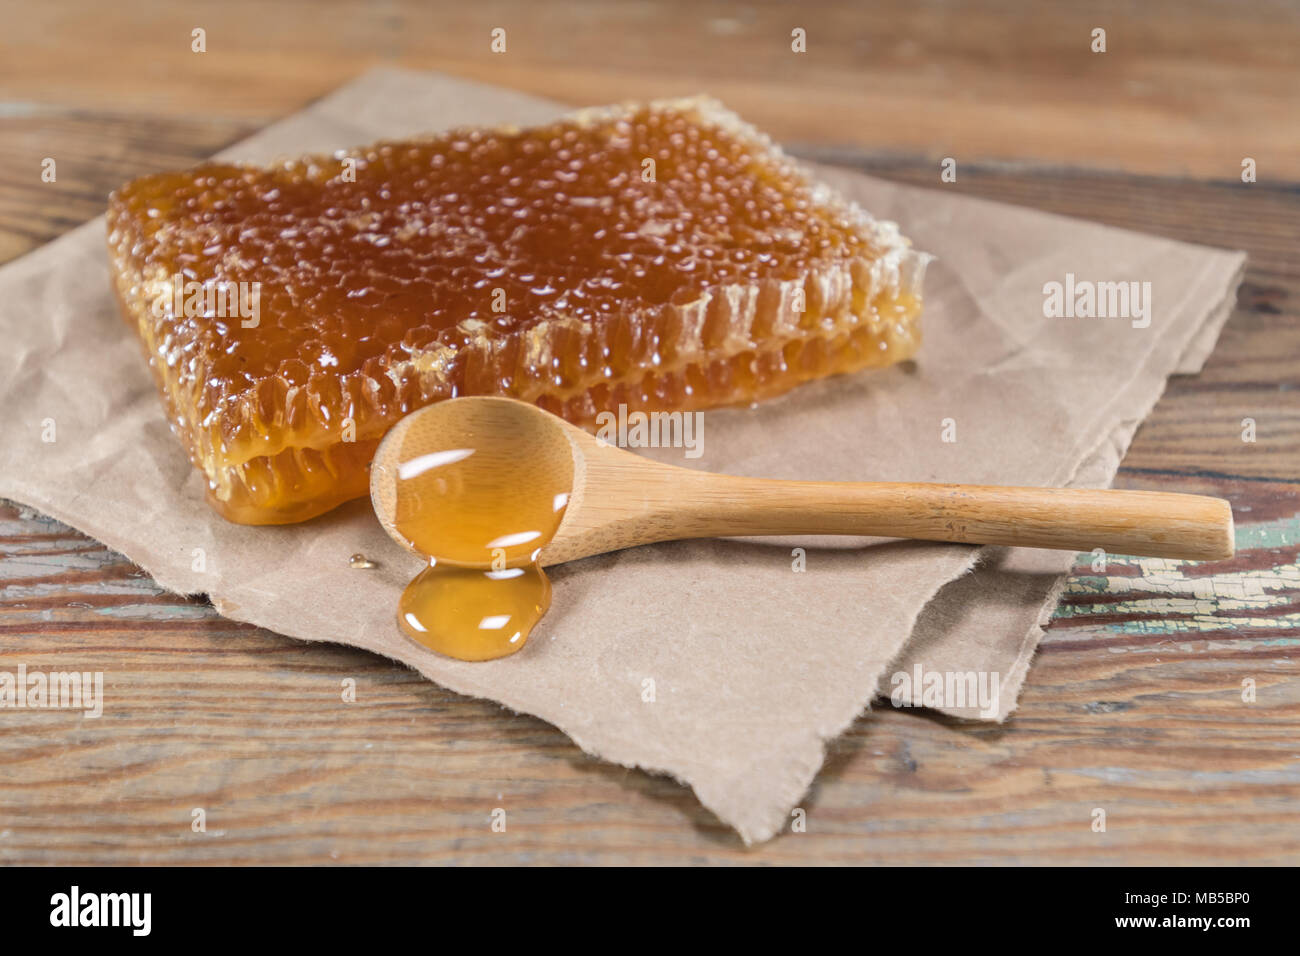 Angle View of Spoon Spilling Honey on Brown Paper - Stock Image